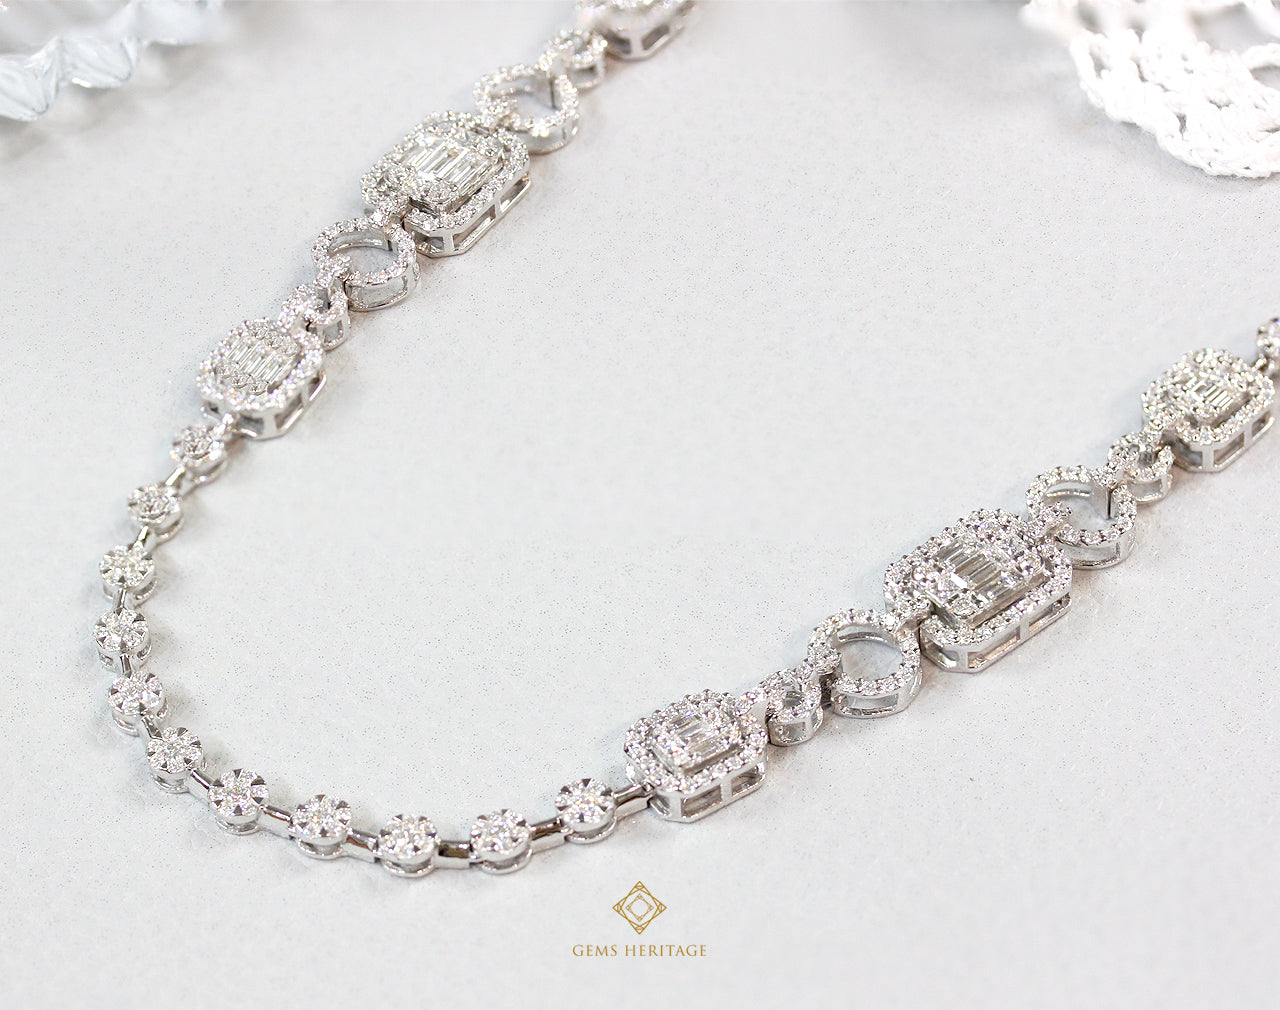 Emerald cut and circle diamond necklace